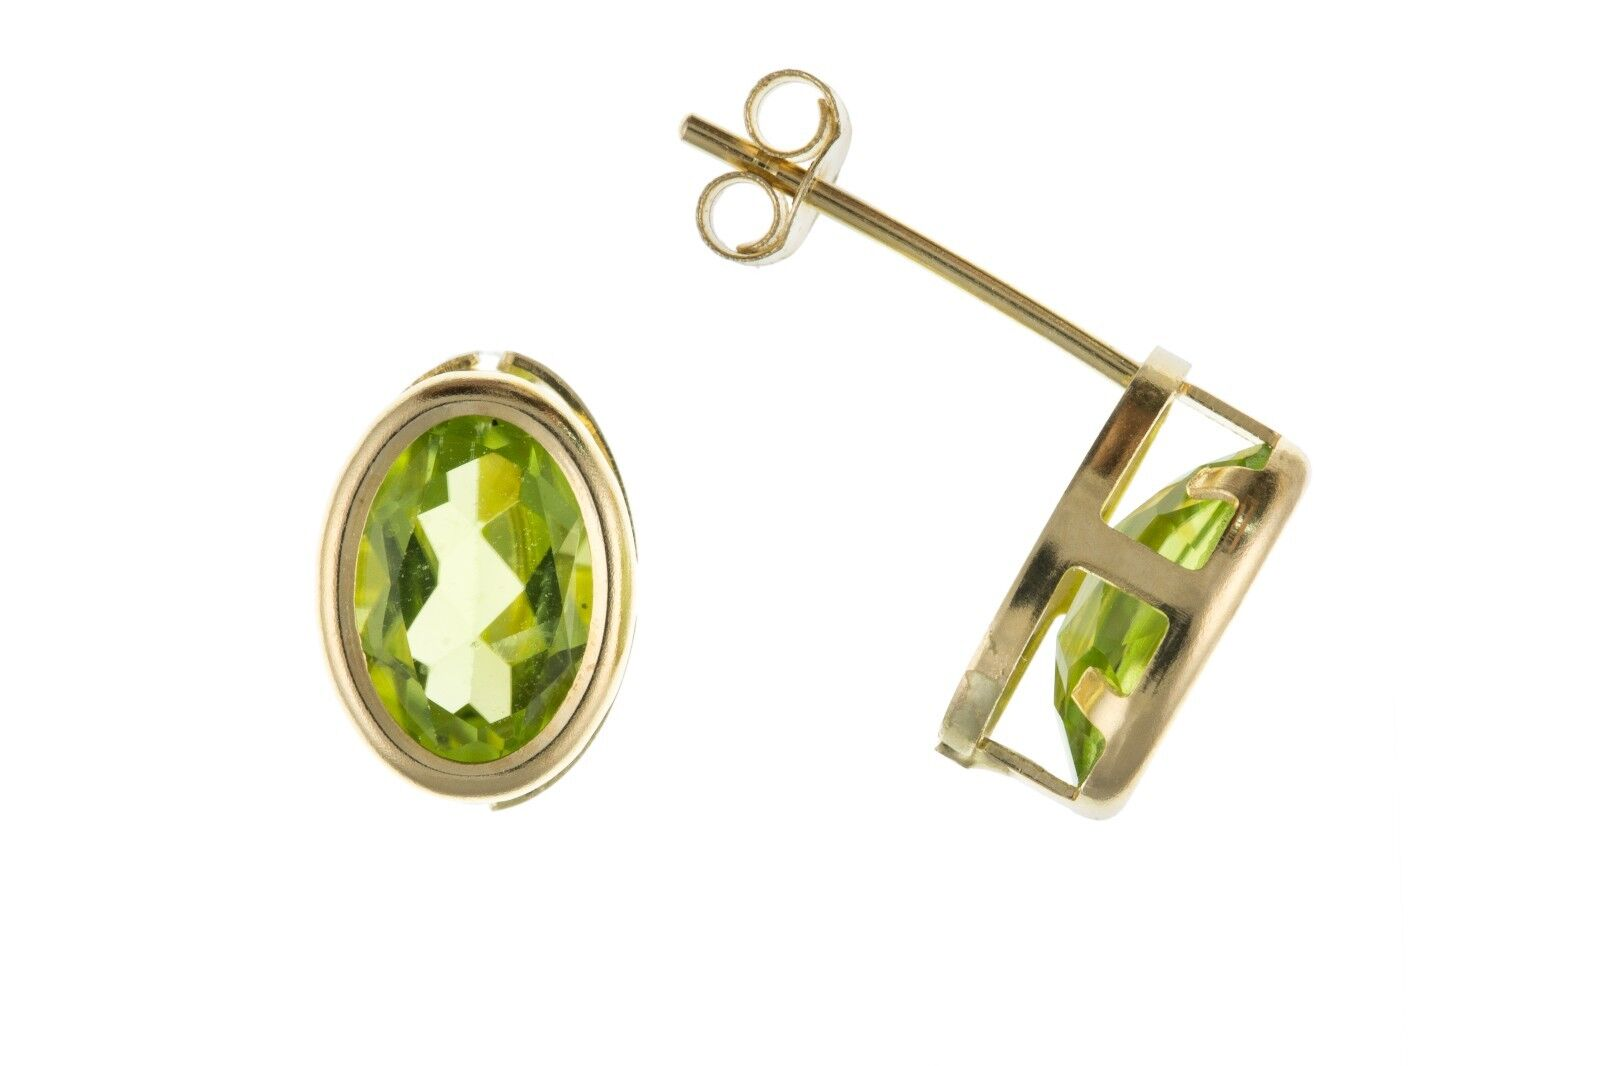 Peridot Oval Stud Earrings Yellow gold Solid 9 Carat Stud Smooth Rub Over Set